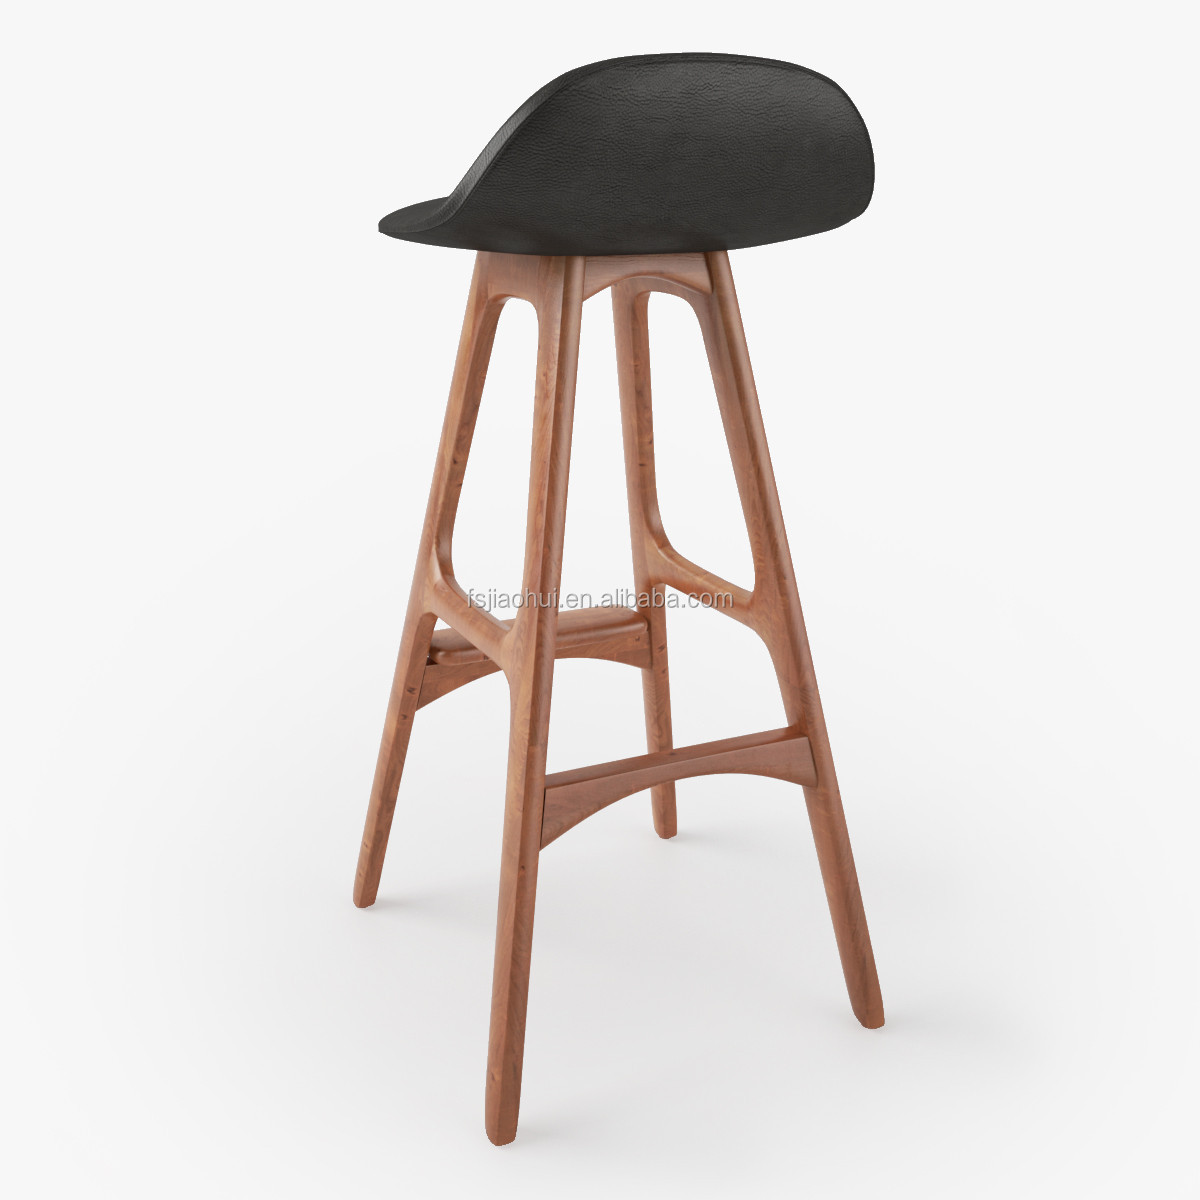 Replica erik buch bar stool in beech wood buy replica erik buch bar stool in beech wood erik - Erik buch bar stool ...